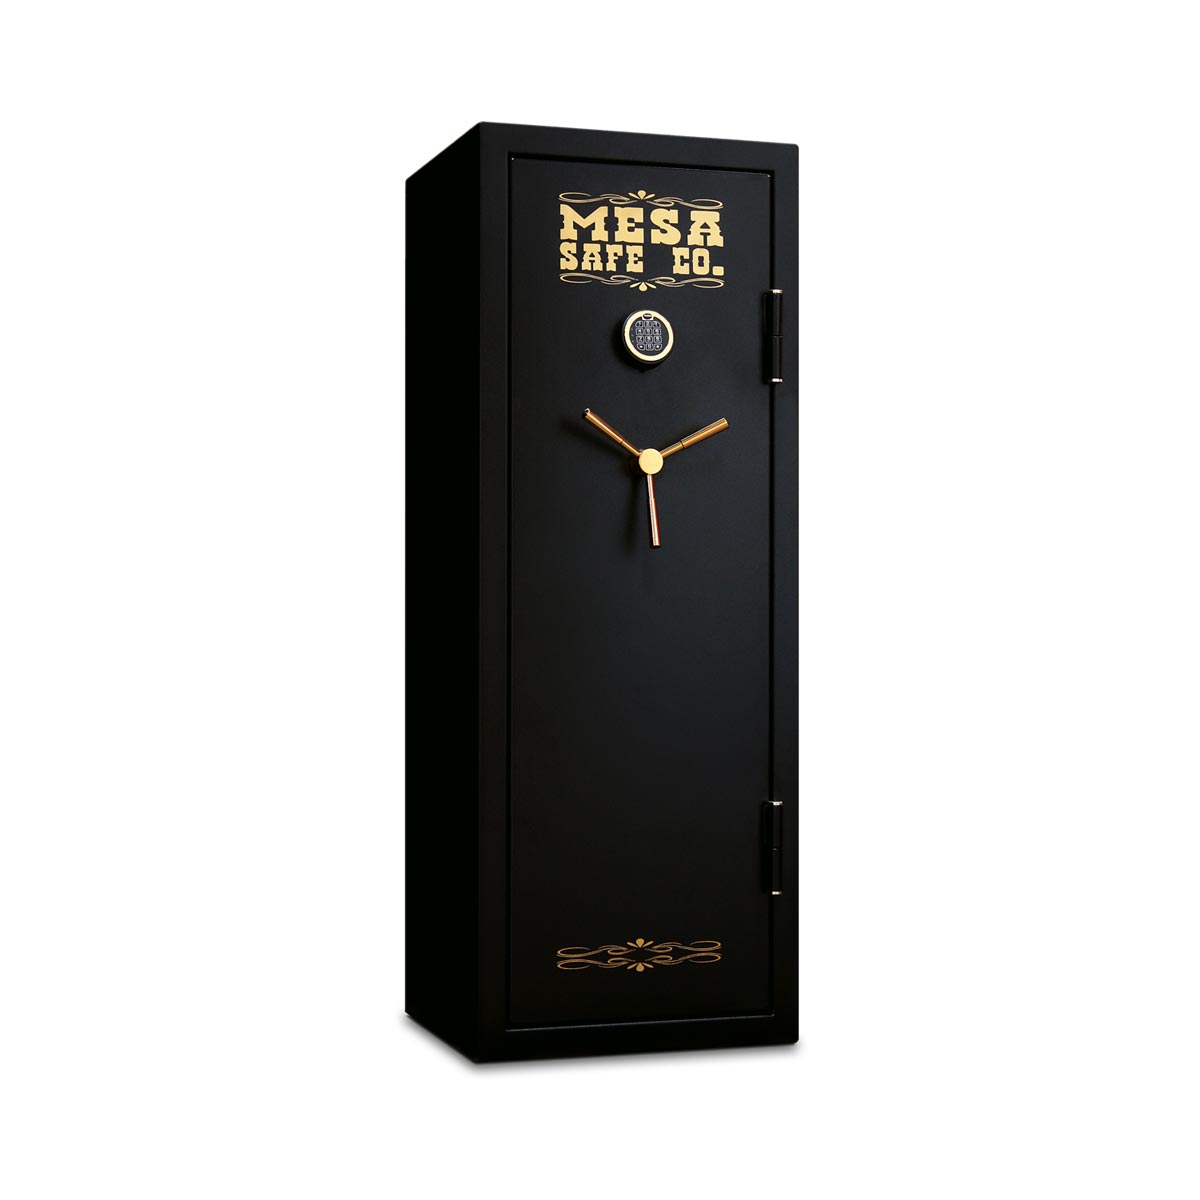 Mesa Safes MBF5922 Gun Safe - 1 Hour Fire Executive Safe